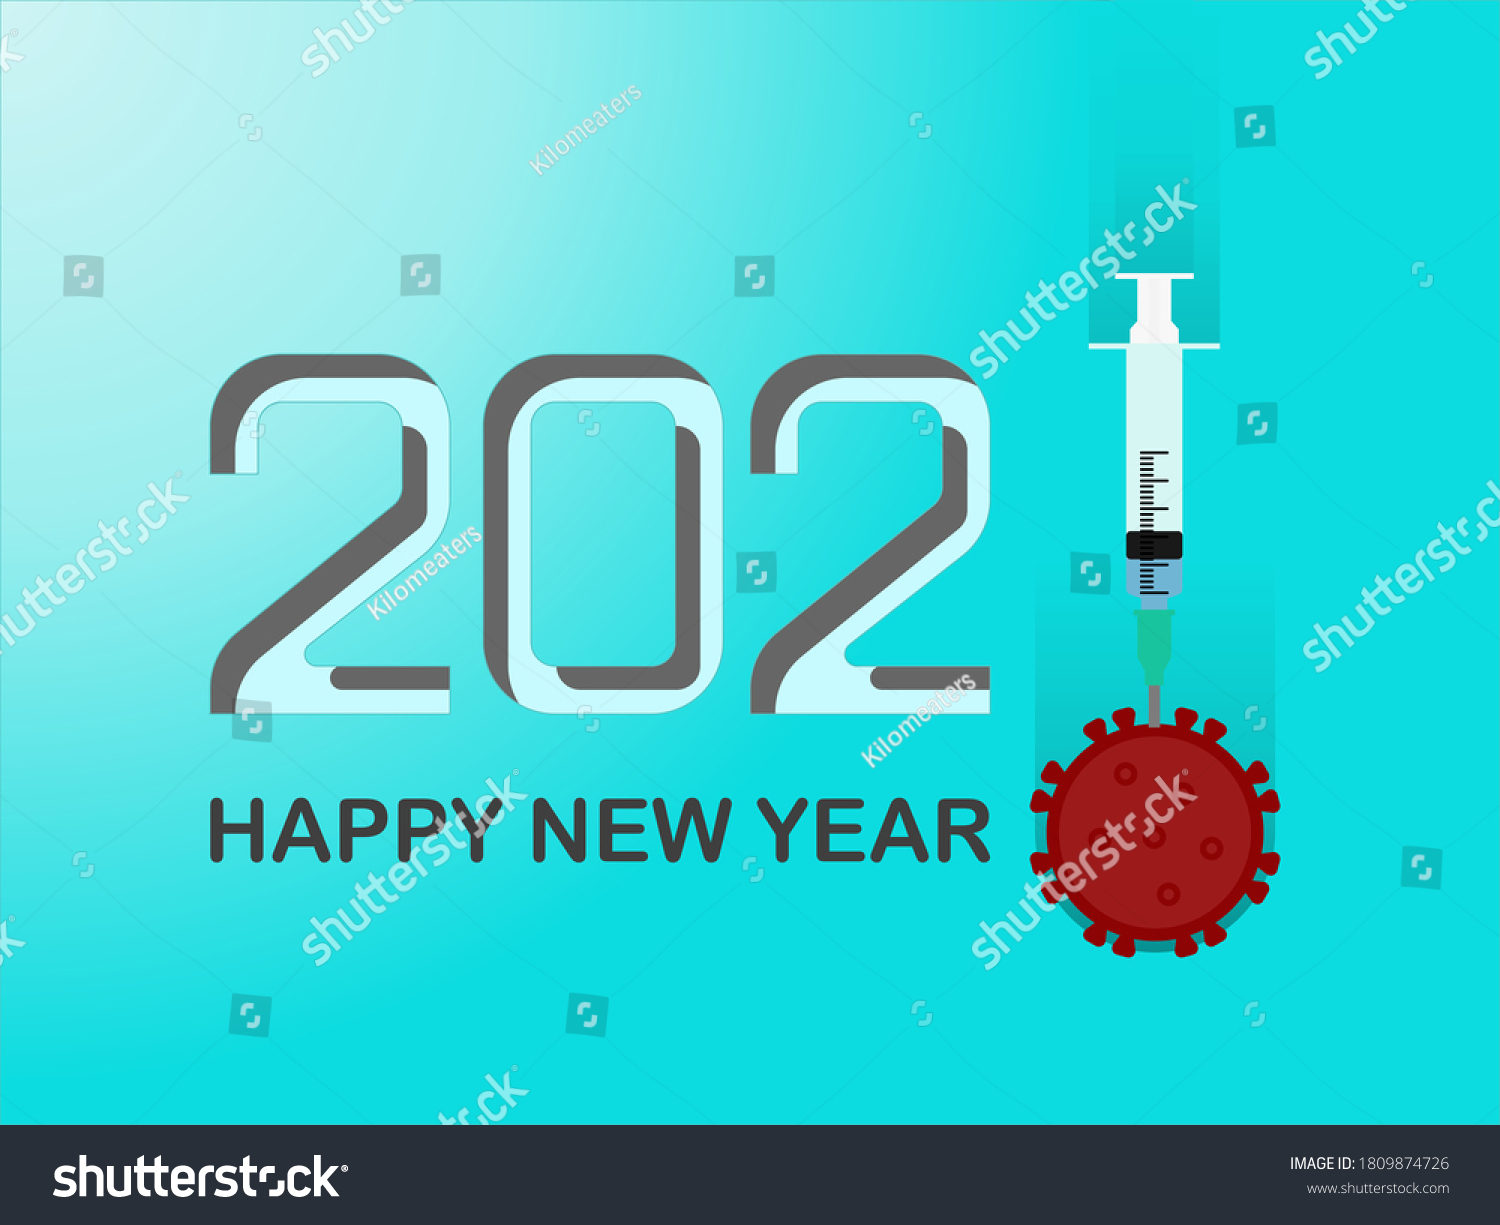 Happy New Year 2021 from VA!  Stock-vector-designed-logo-happy-new-year-symbols-fighting-the-covid-epidemic-with-syringe-and-the-hope-1809874726